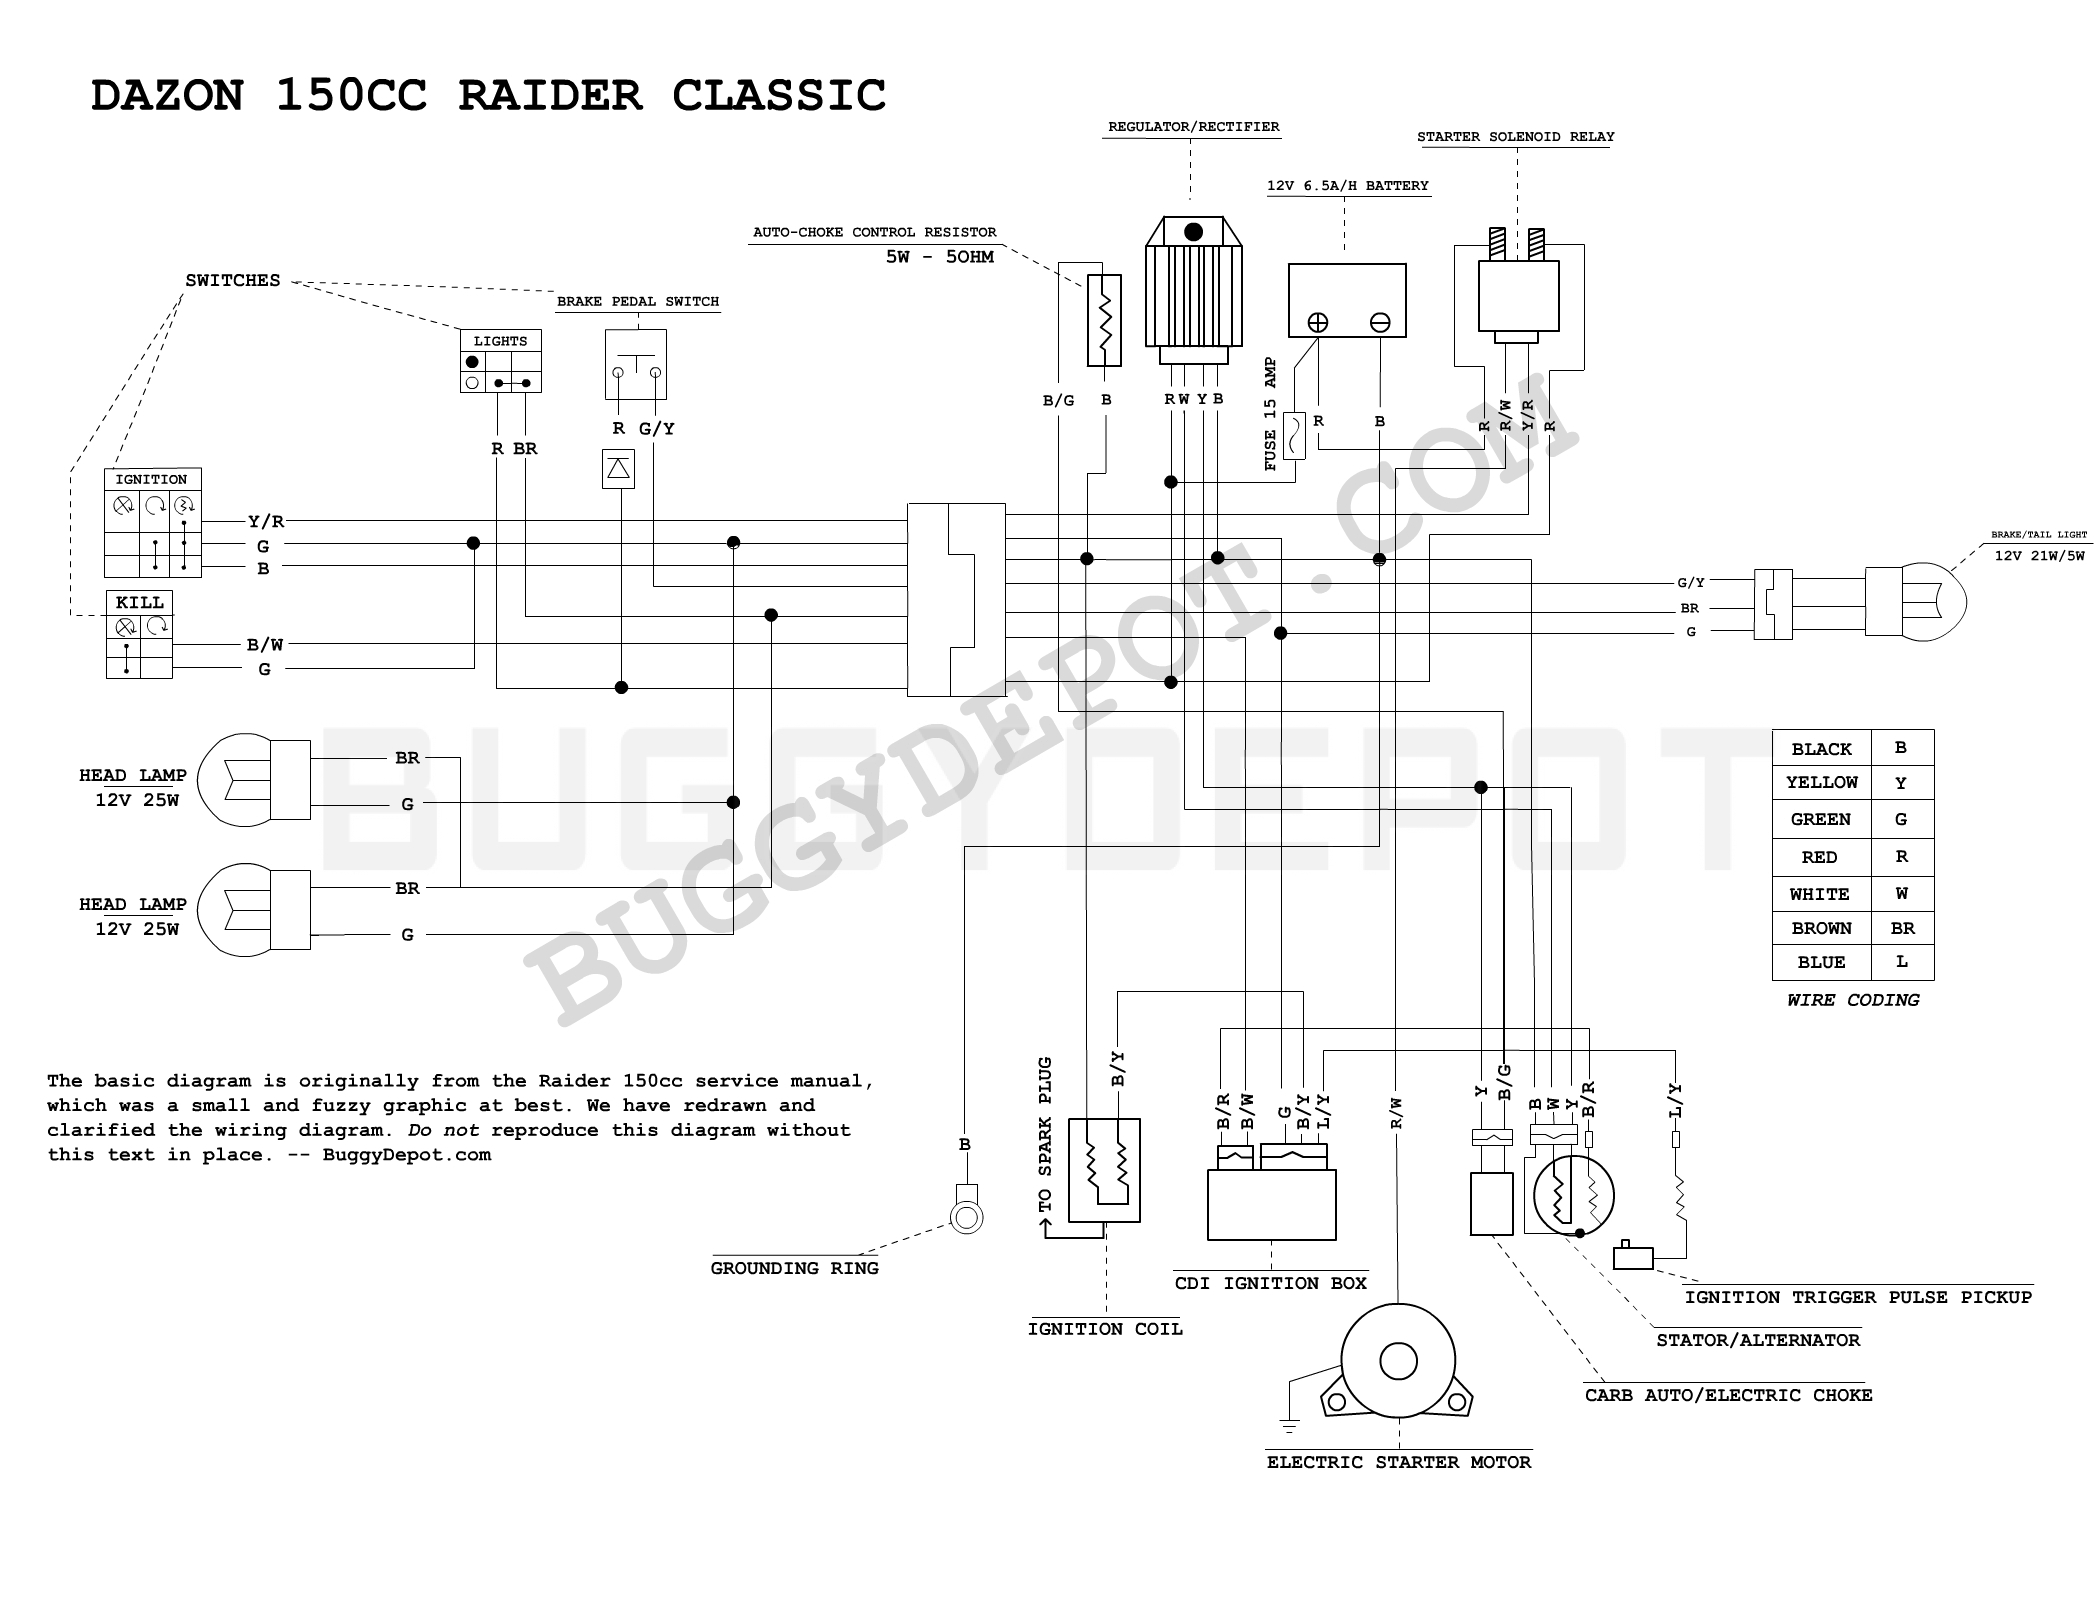 dazon raider classic wiring diagram buggy depot technical center article 33 1278205207 the stator